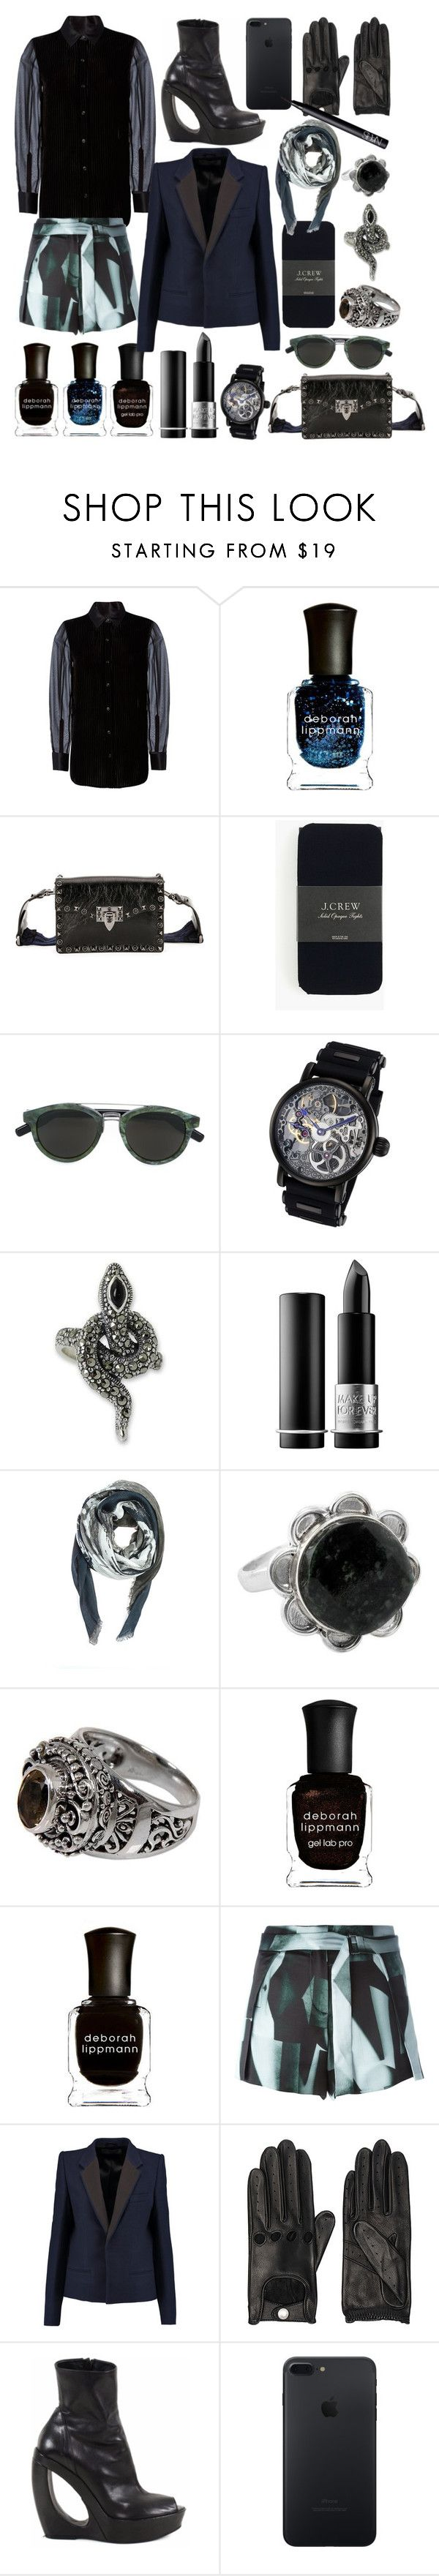 """""""love snake"""" by nothingisnormal ❤ liked on Polyvore featuring rag & bone, Deborah Lippmann, Valentino, J.Crew, Rougois, NOVICA, MAKE UP FOR EVER, 8aout, Ann Demeulemeester and Haider Ackermann"""